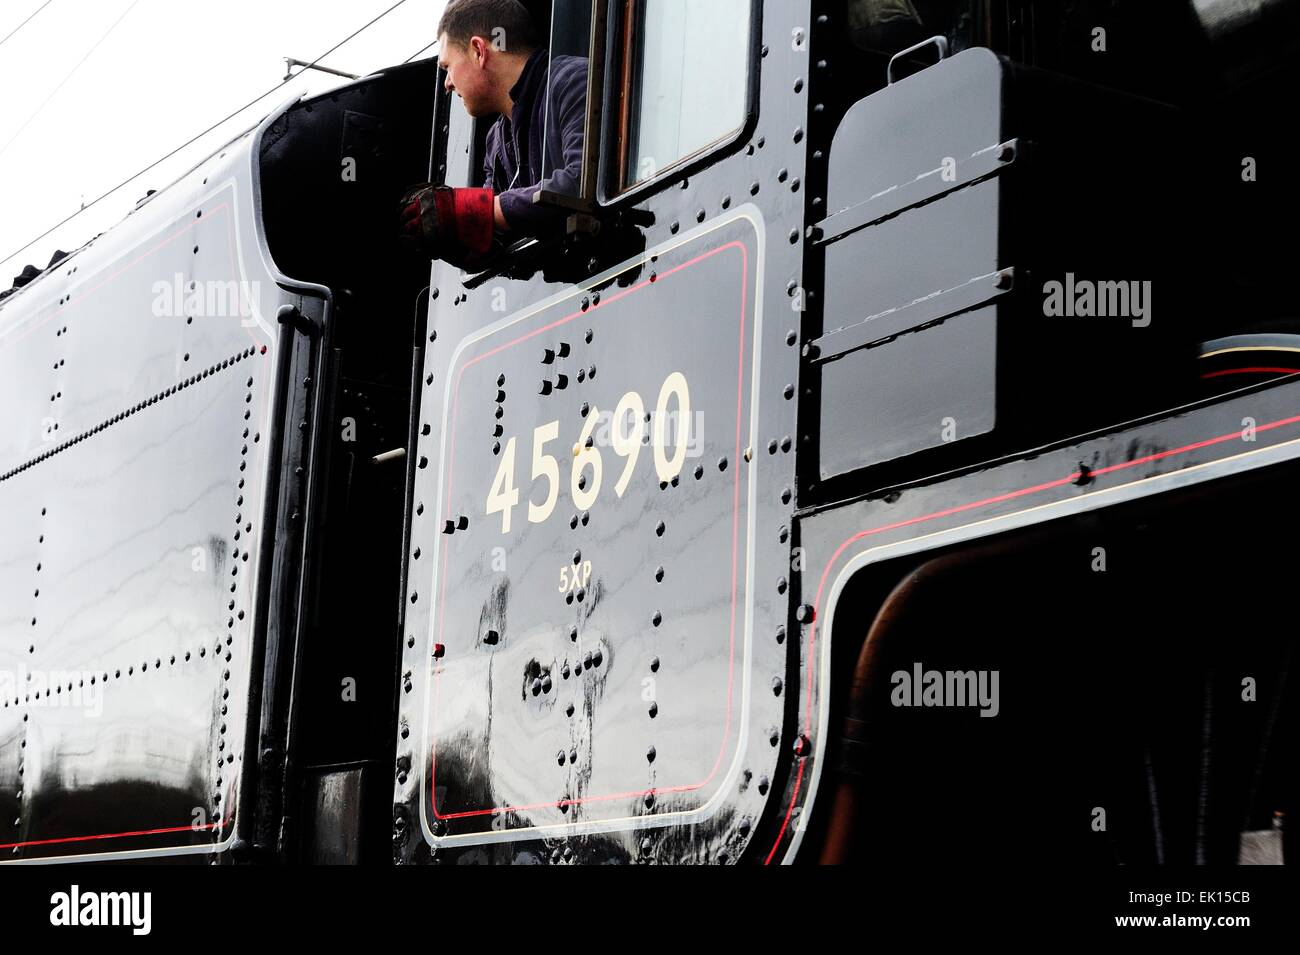 45690 Duchess of Sutherland - Stock Image